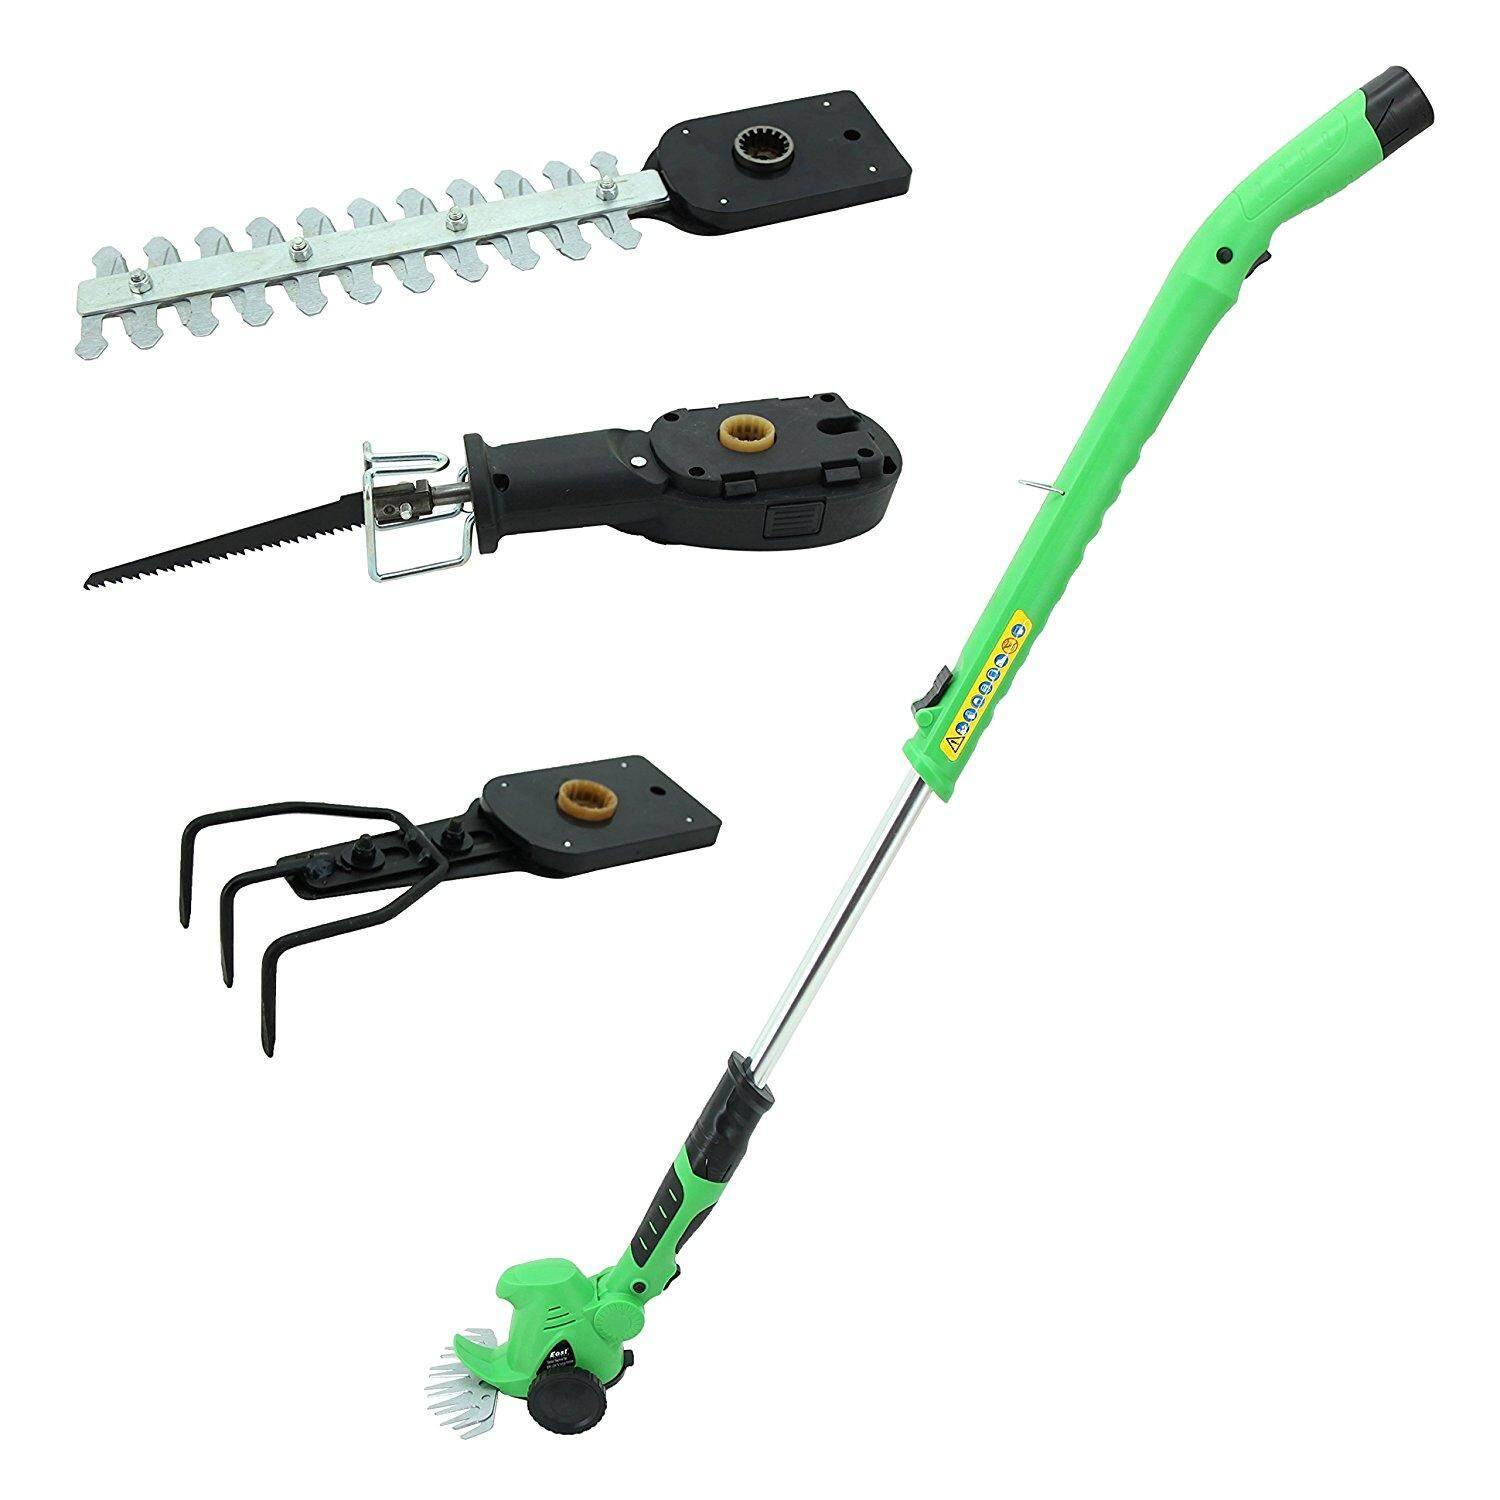 10.8V 4 in 1 Electric Cordless Compact Grass Hedge Edge Trimmer Saw With Handle And Wheel EU PLUG